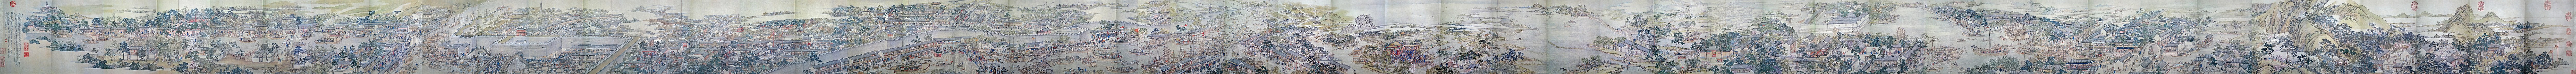 Dives Suzhou a Xu Yang (徐扬) anno 1759 picta (Museum Provinciale Liaoning)